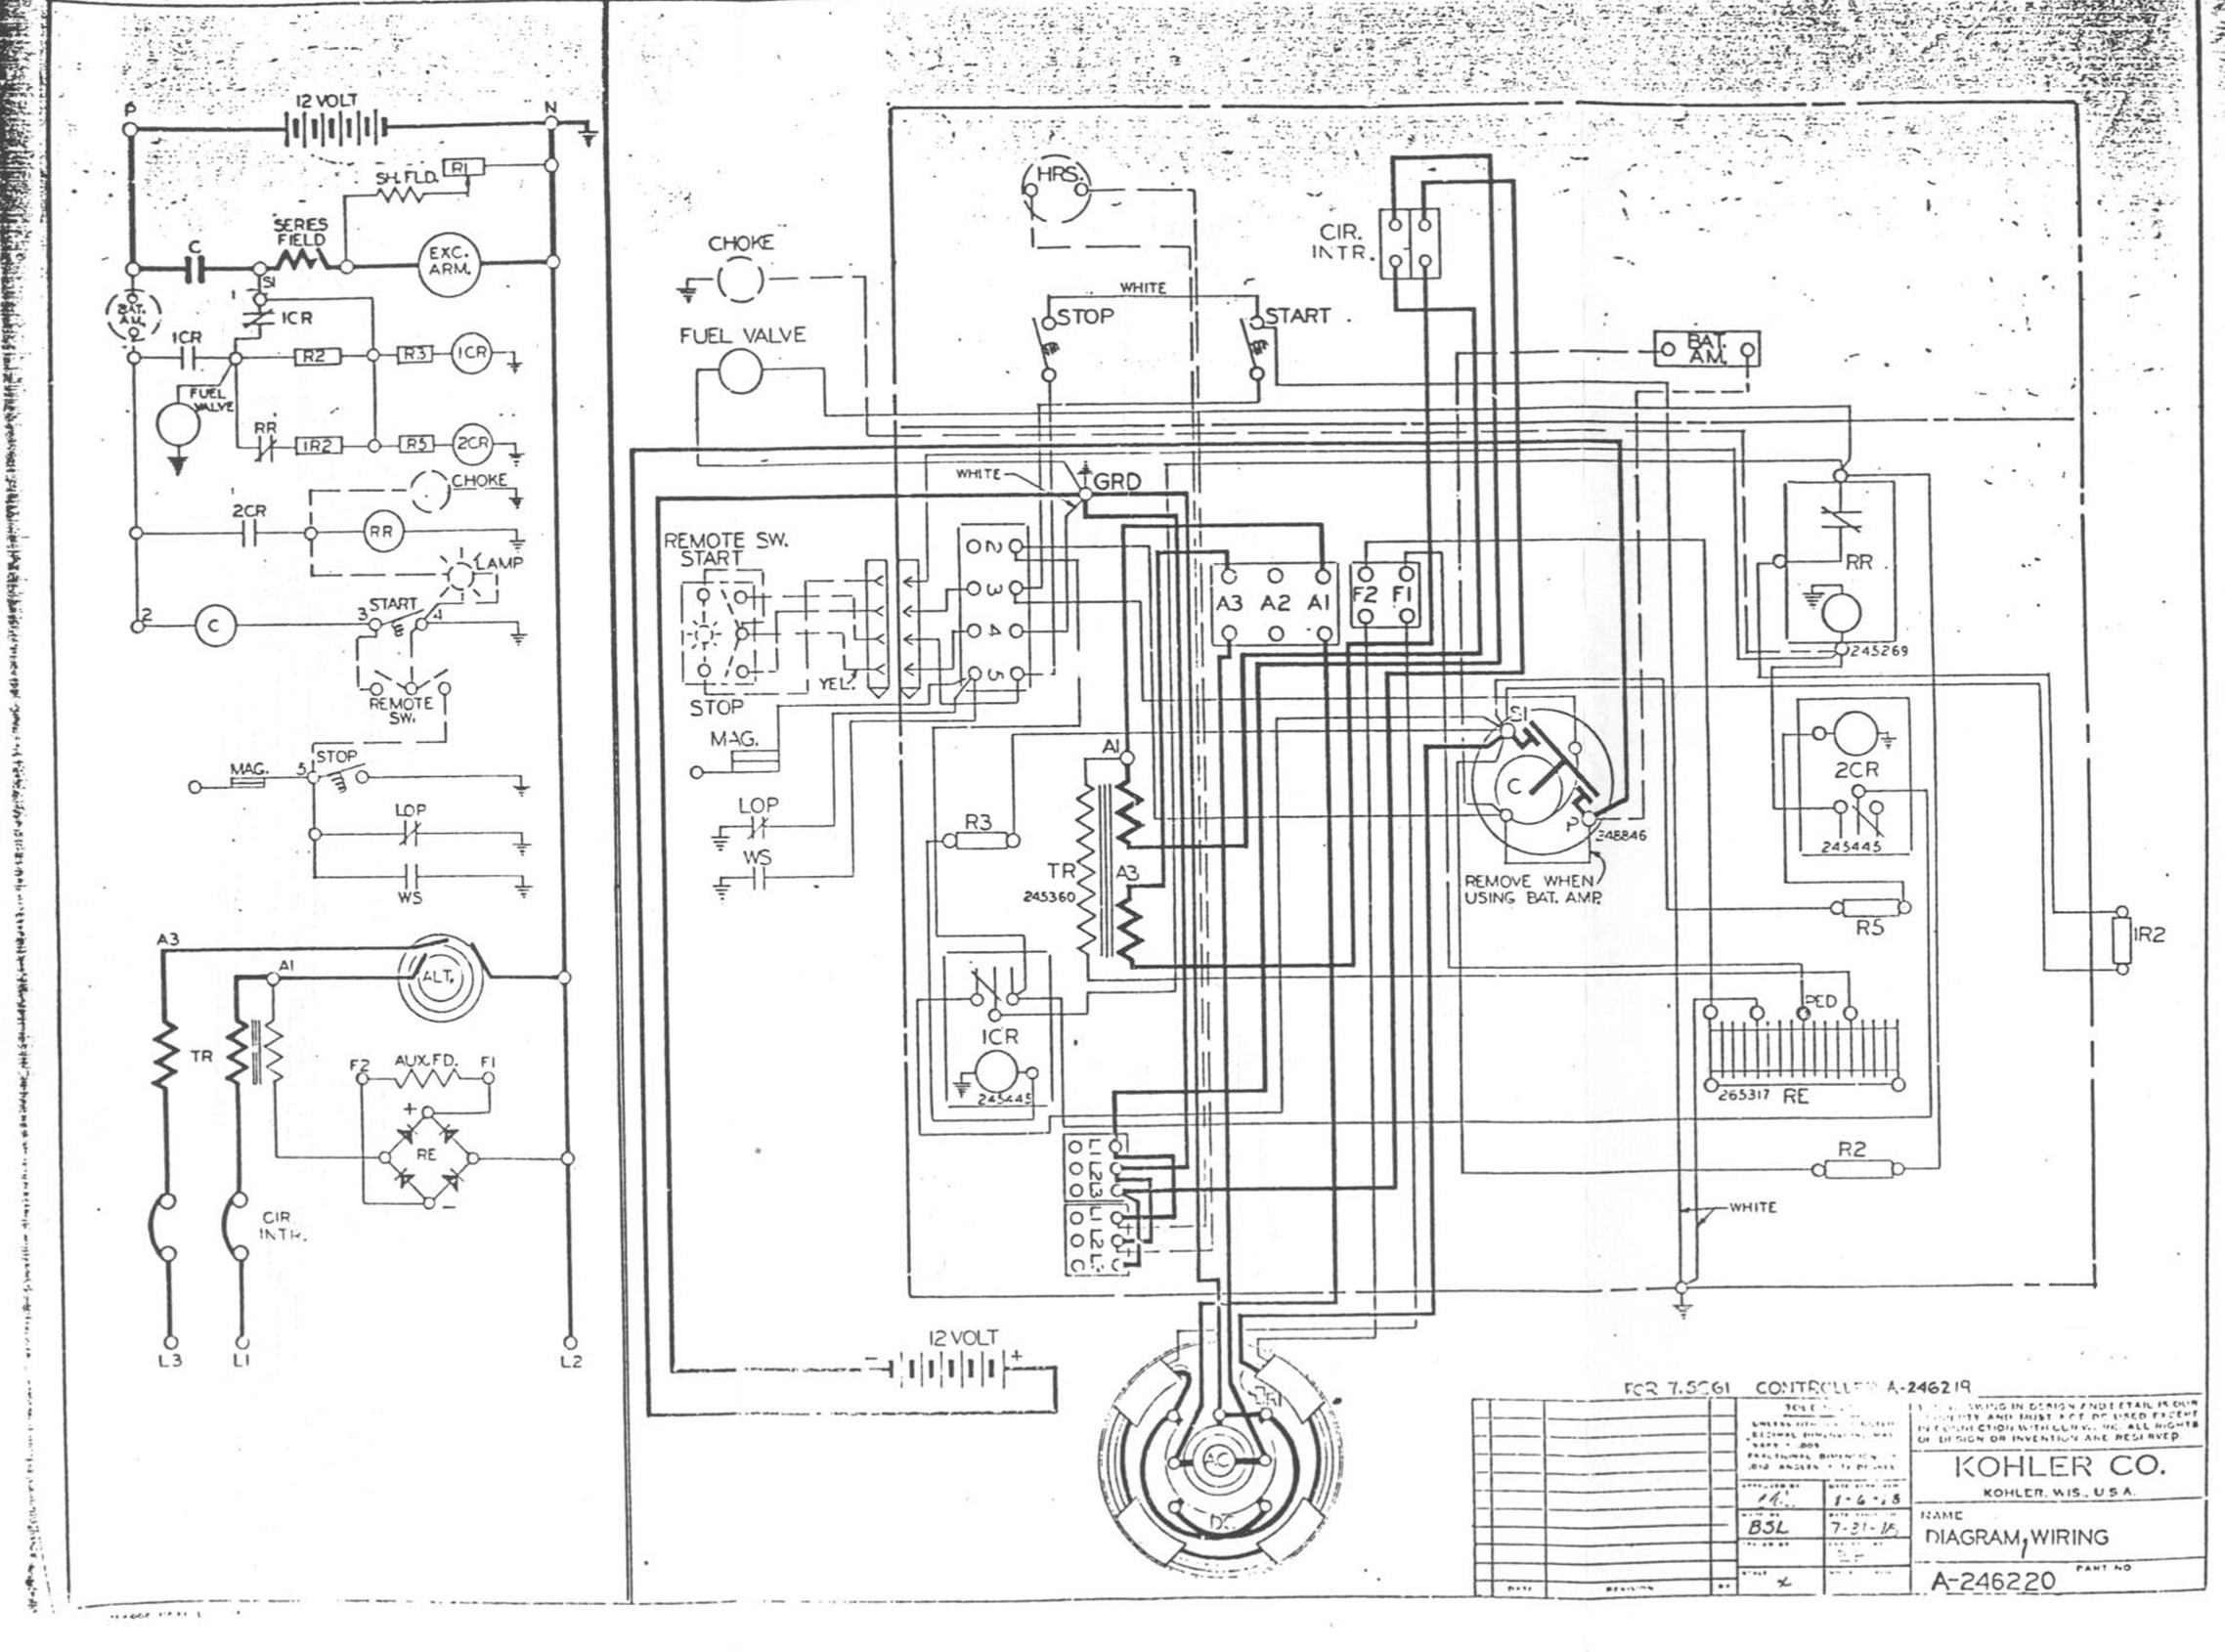 kohler generator wiring diagram perkins generator wiring diagram save perkins genset engine kohler manuals and information wanderlodge 11d kohler generator wiring diagram download